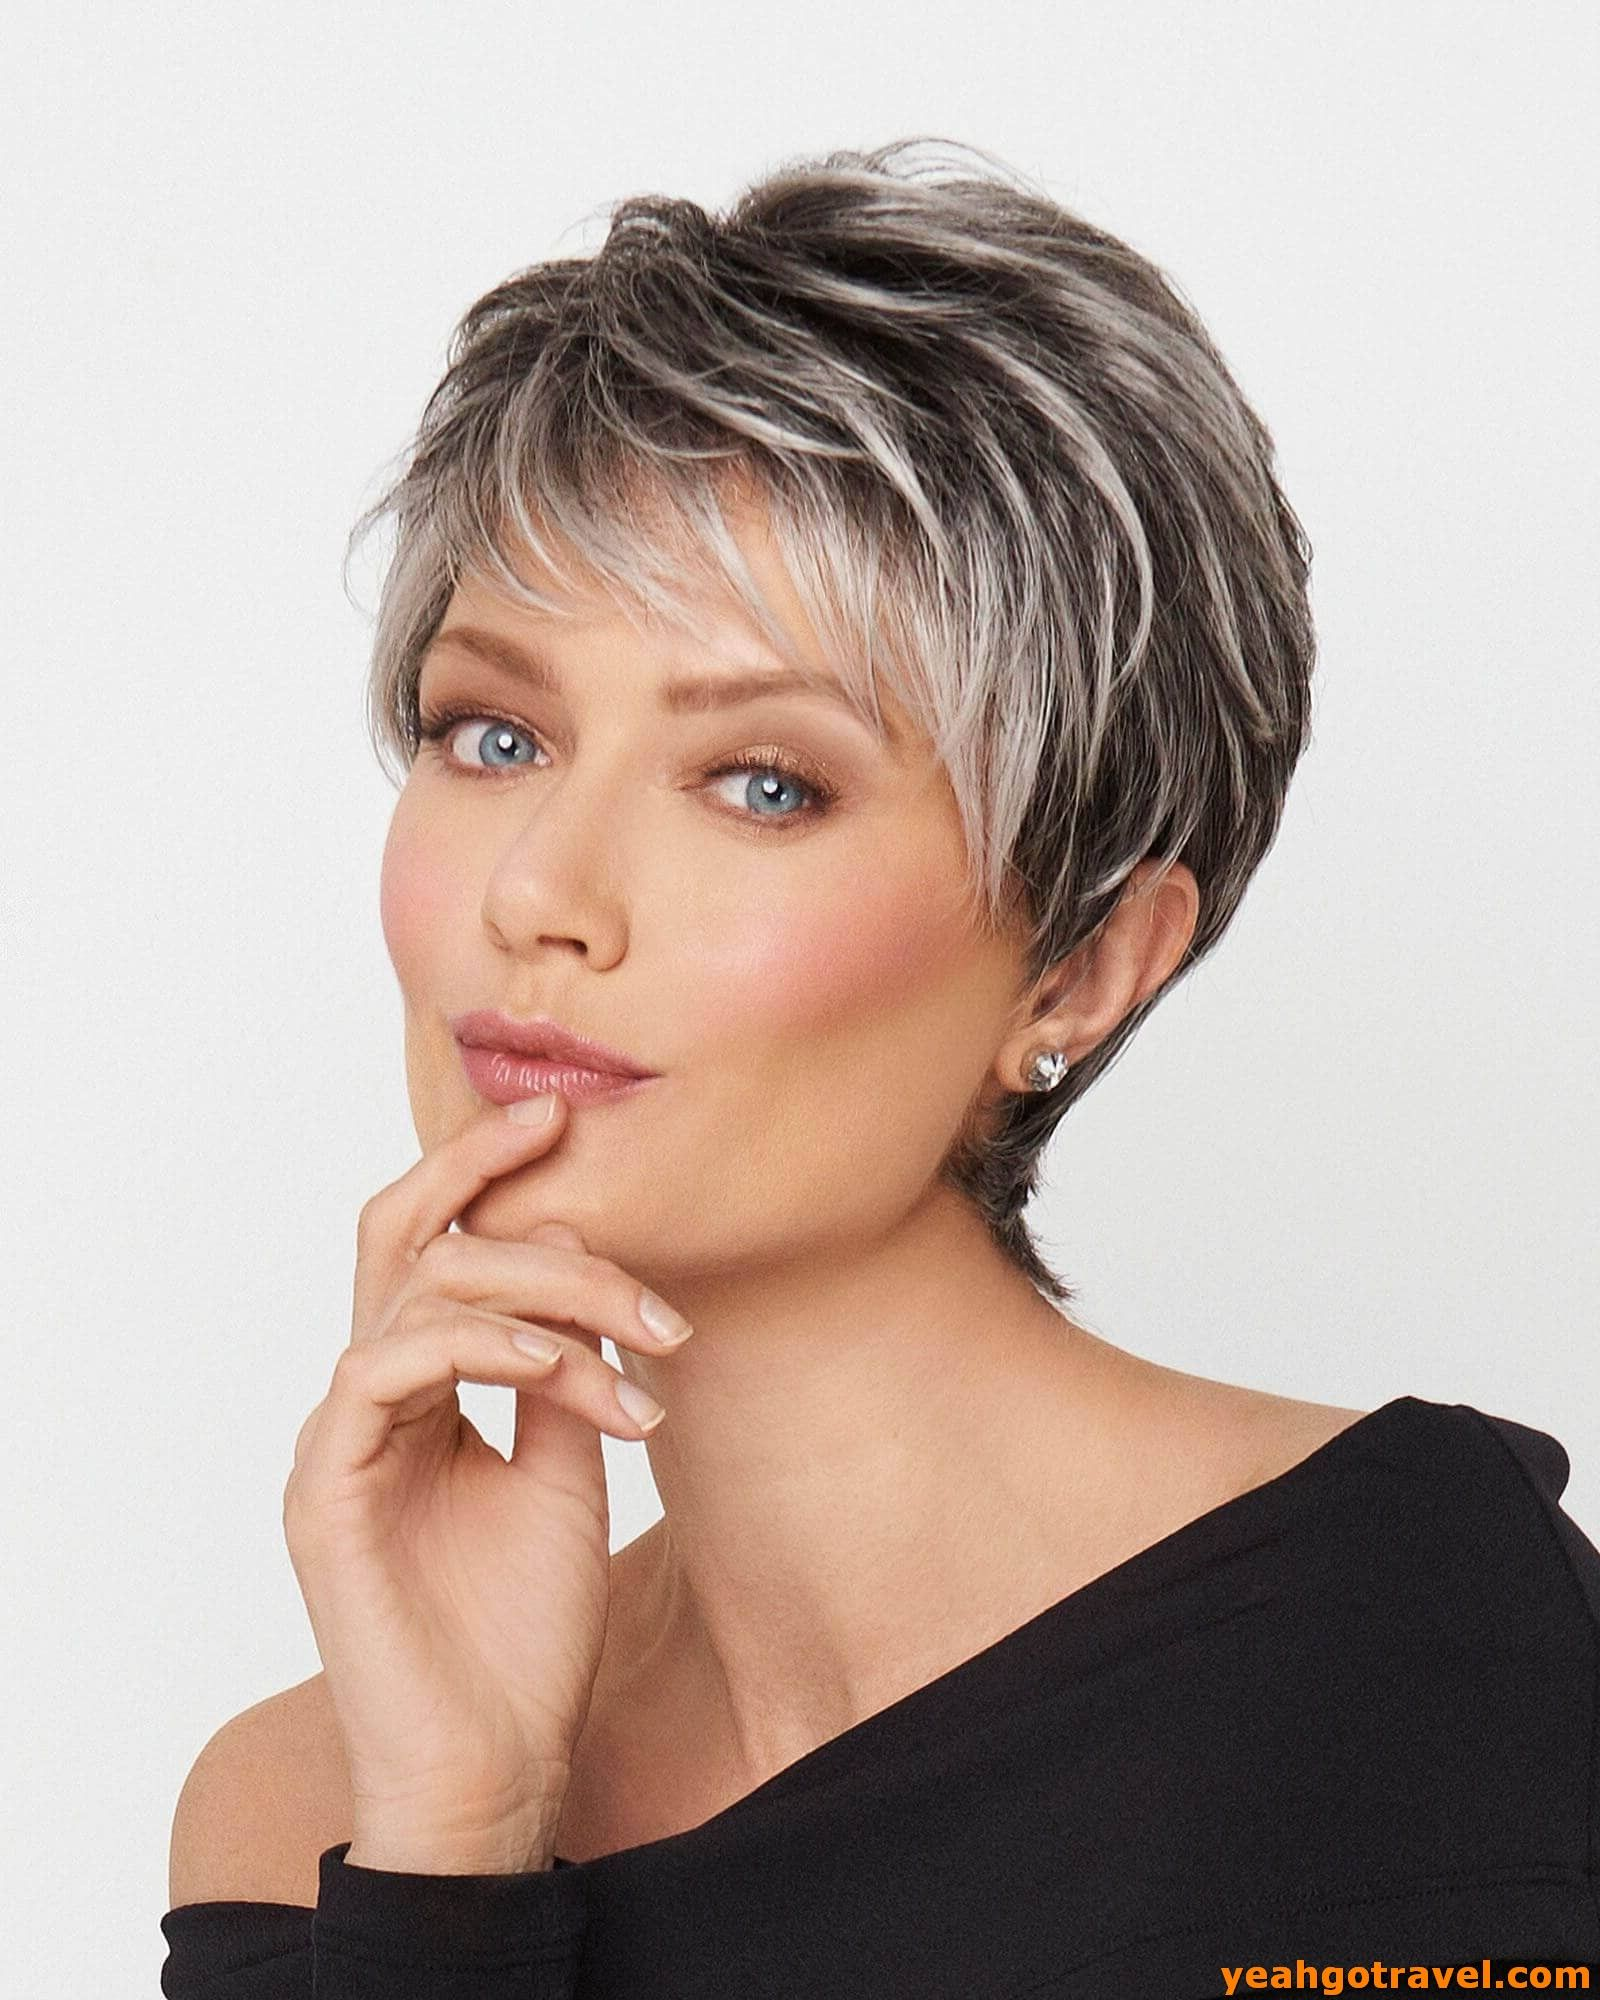 21 Short Haircuts For Your New Look 2019